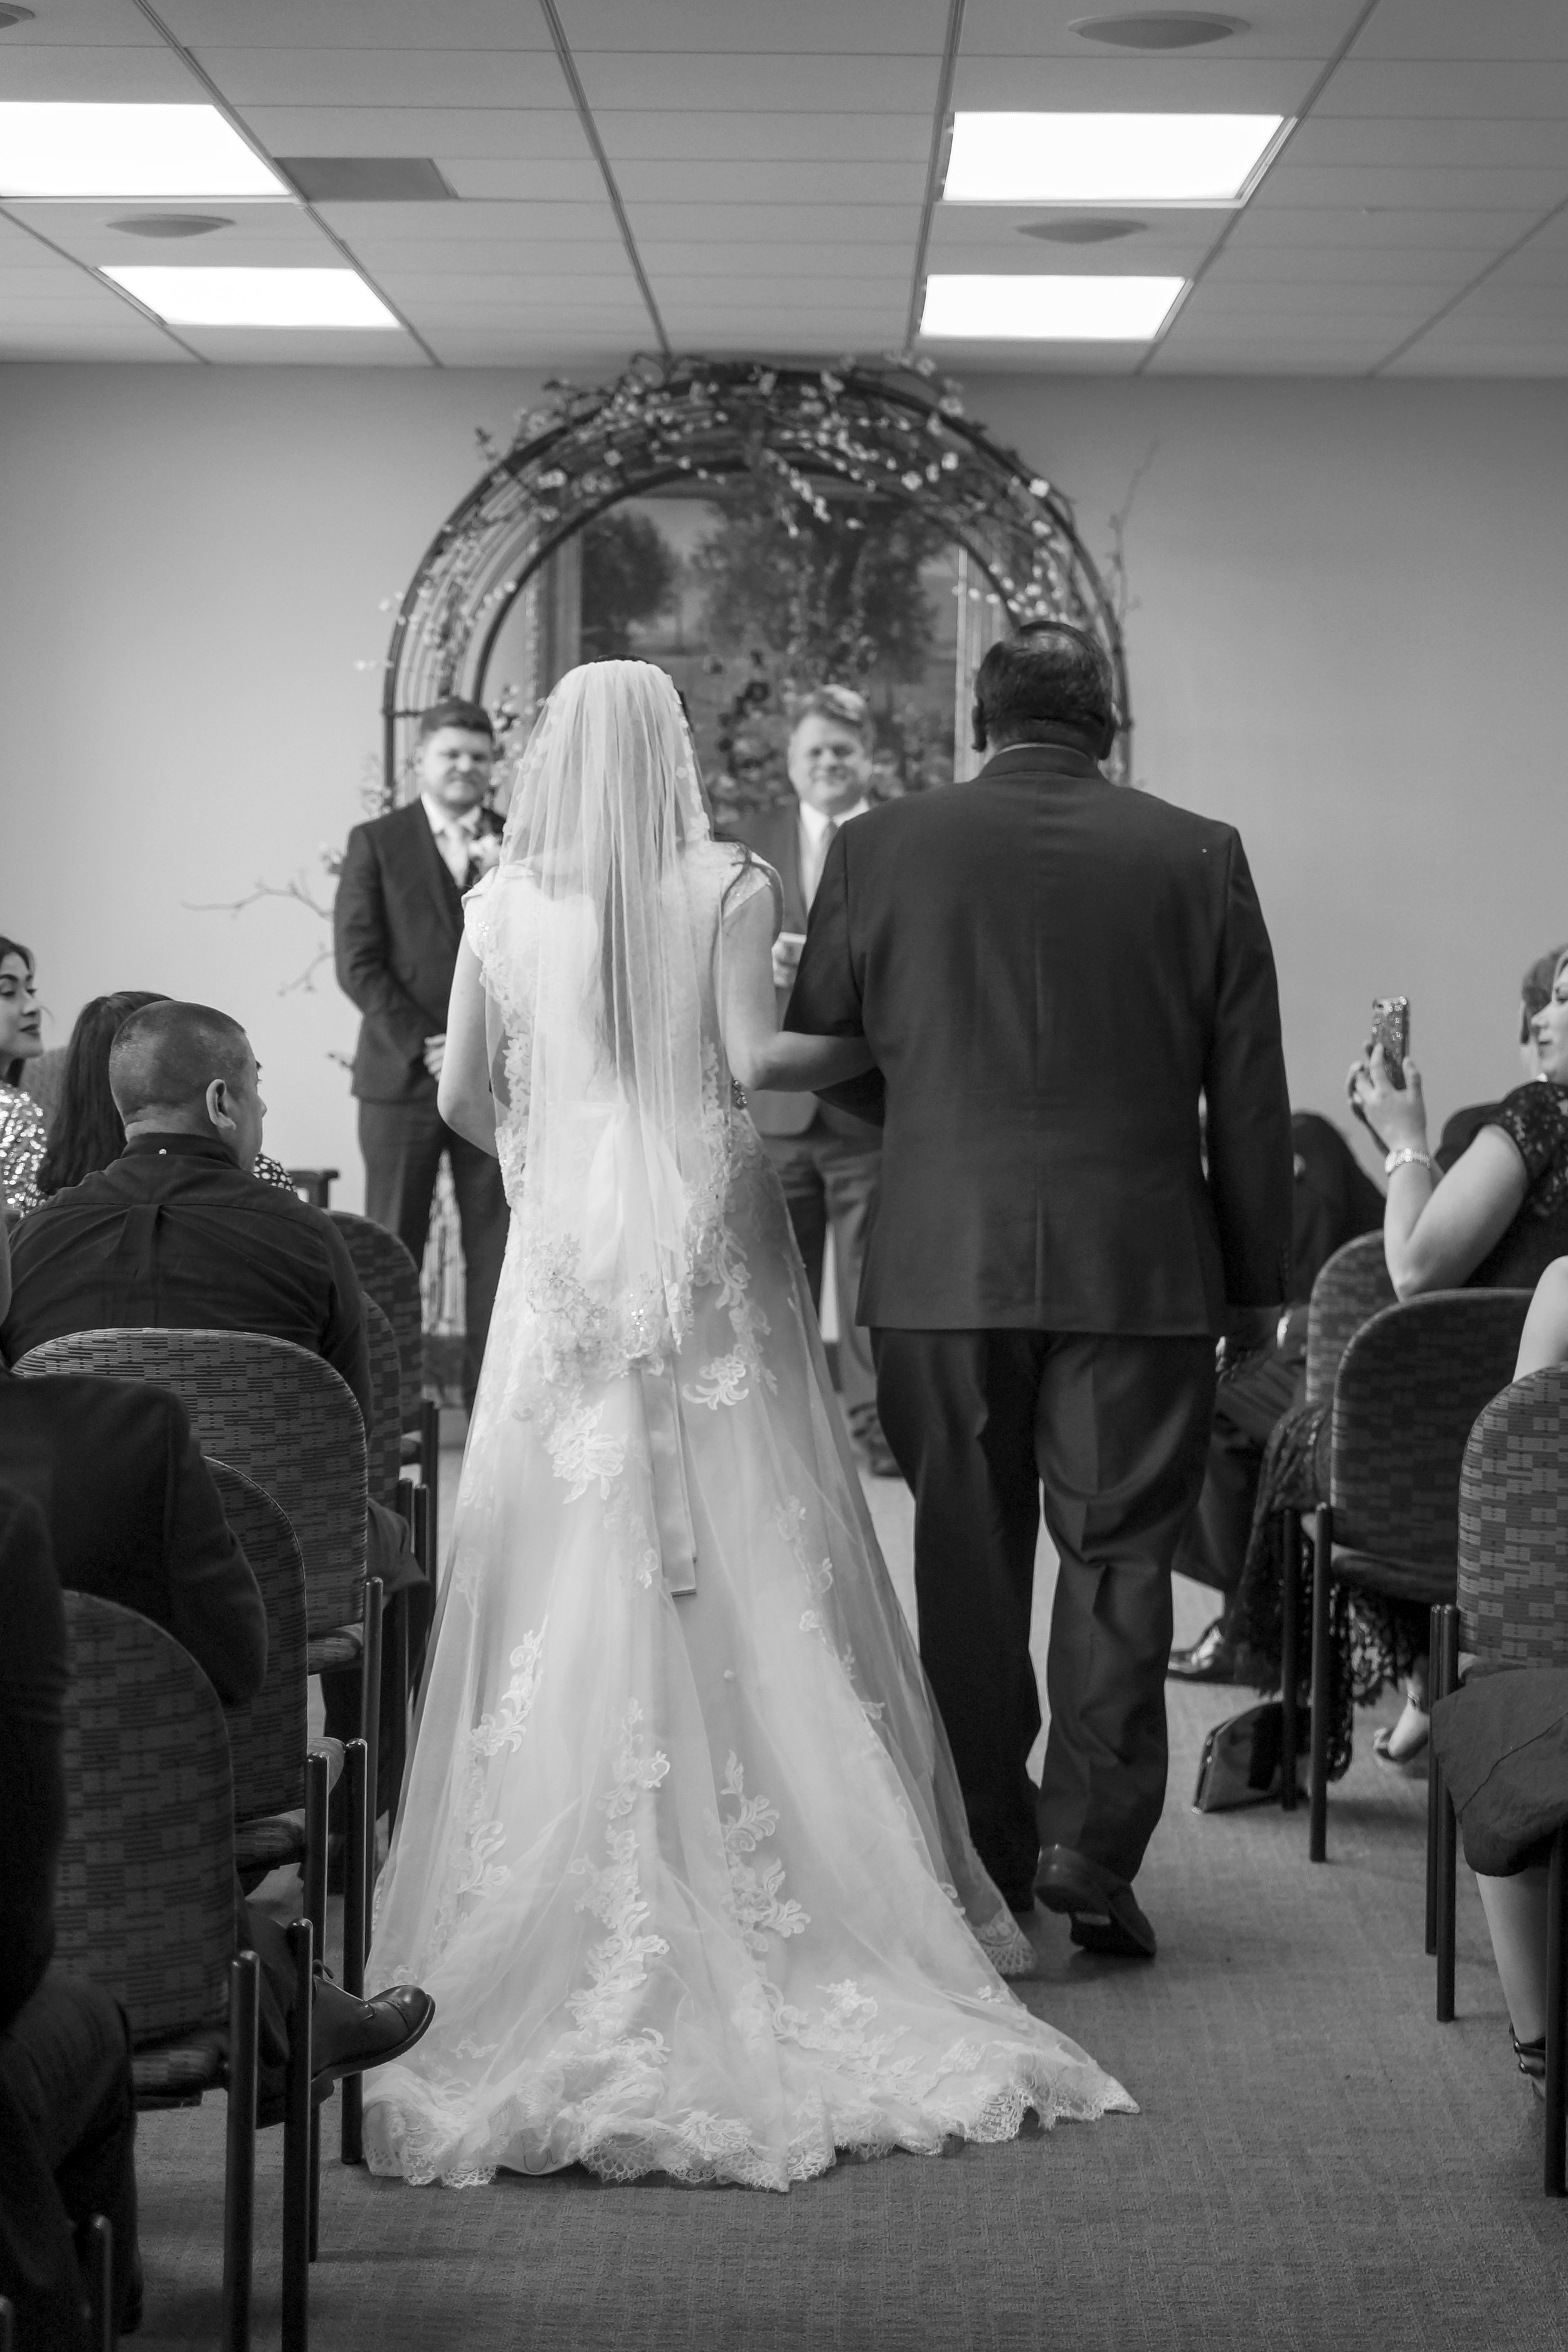 Ring Ceremony in the Zions Bank Founders Room by Bri Bergman Photography04.jpg